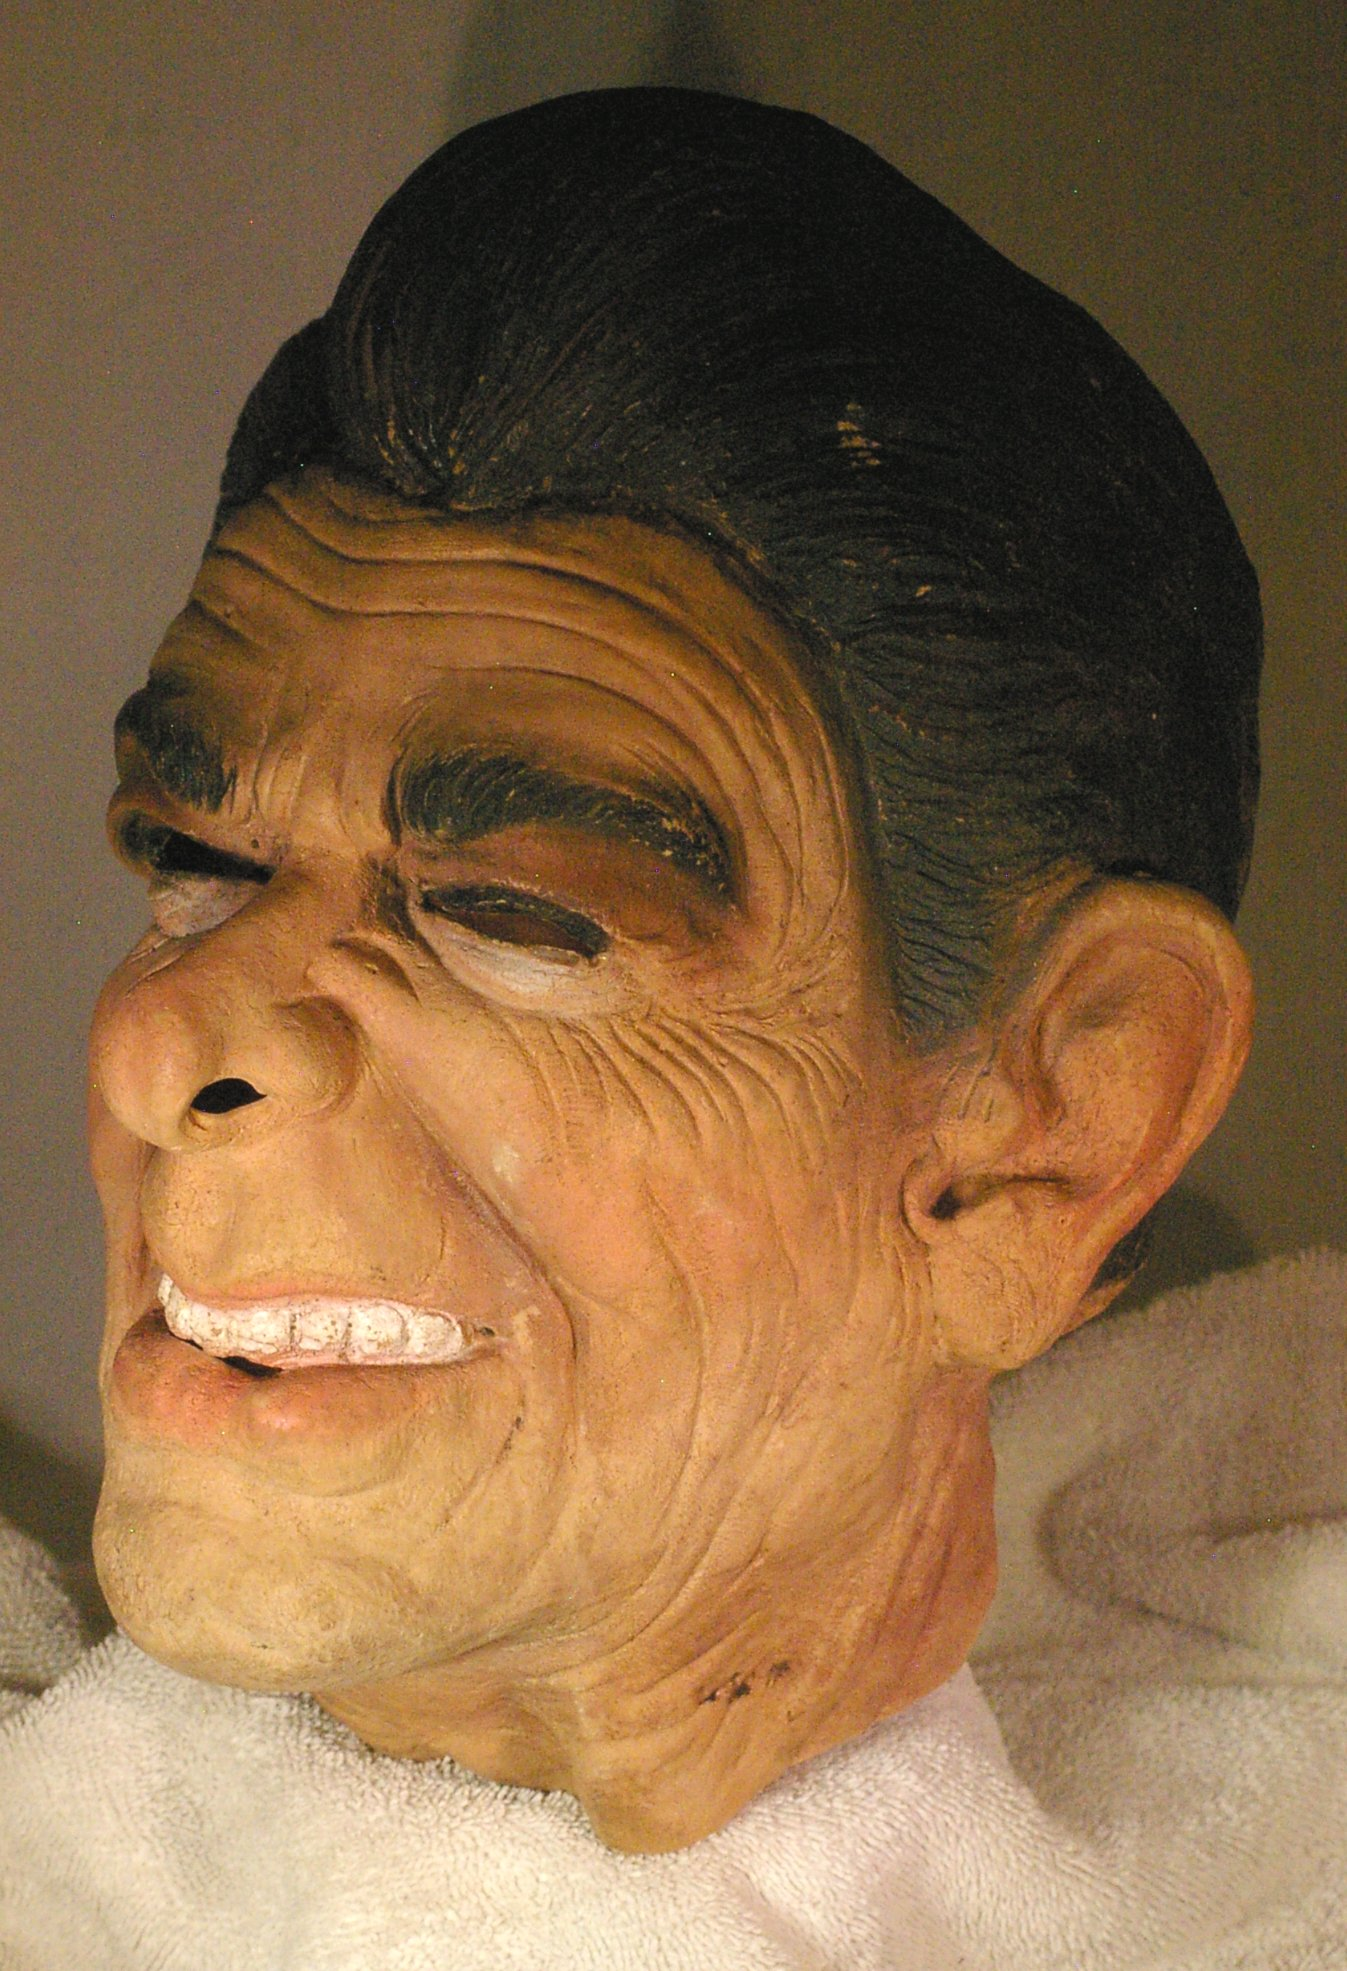 Ronald Reagan Rubber Halloween Mask from 1980's